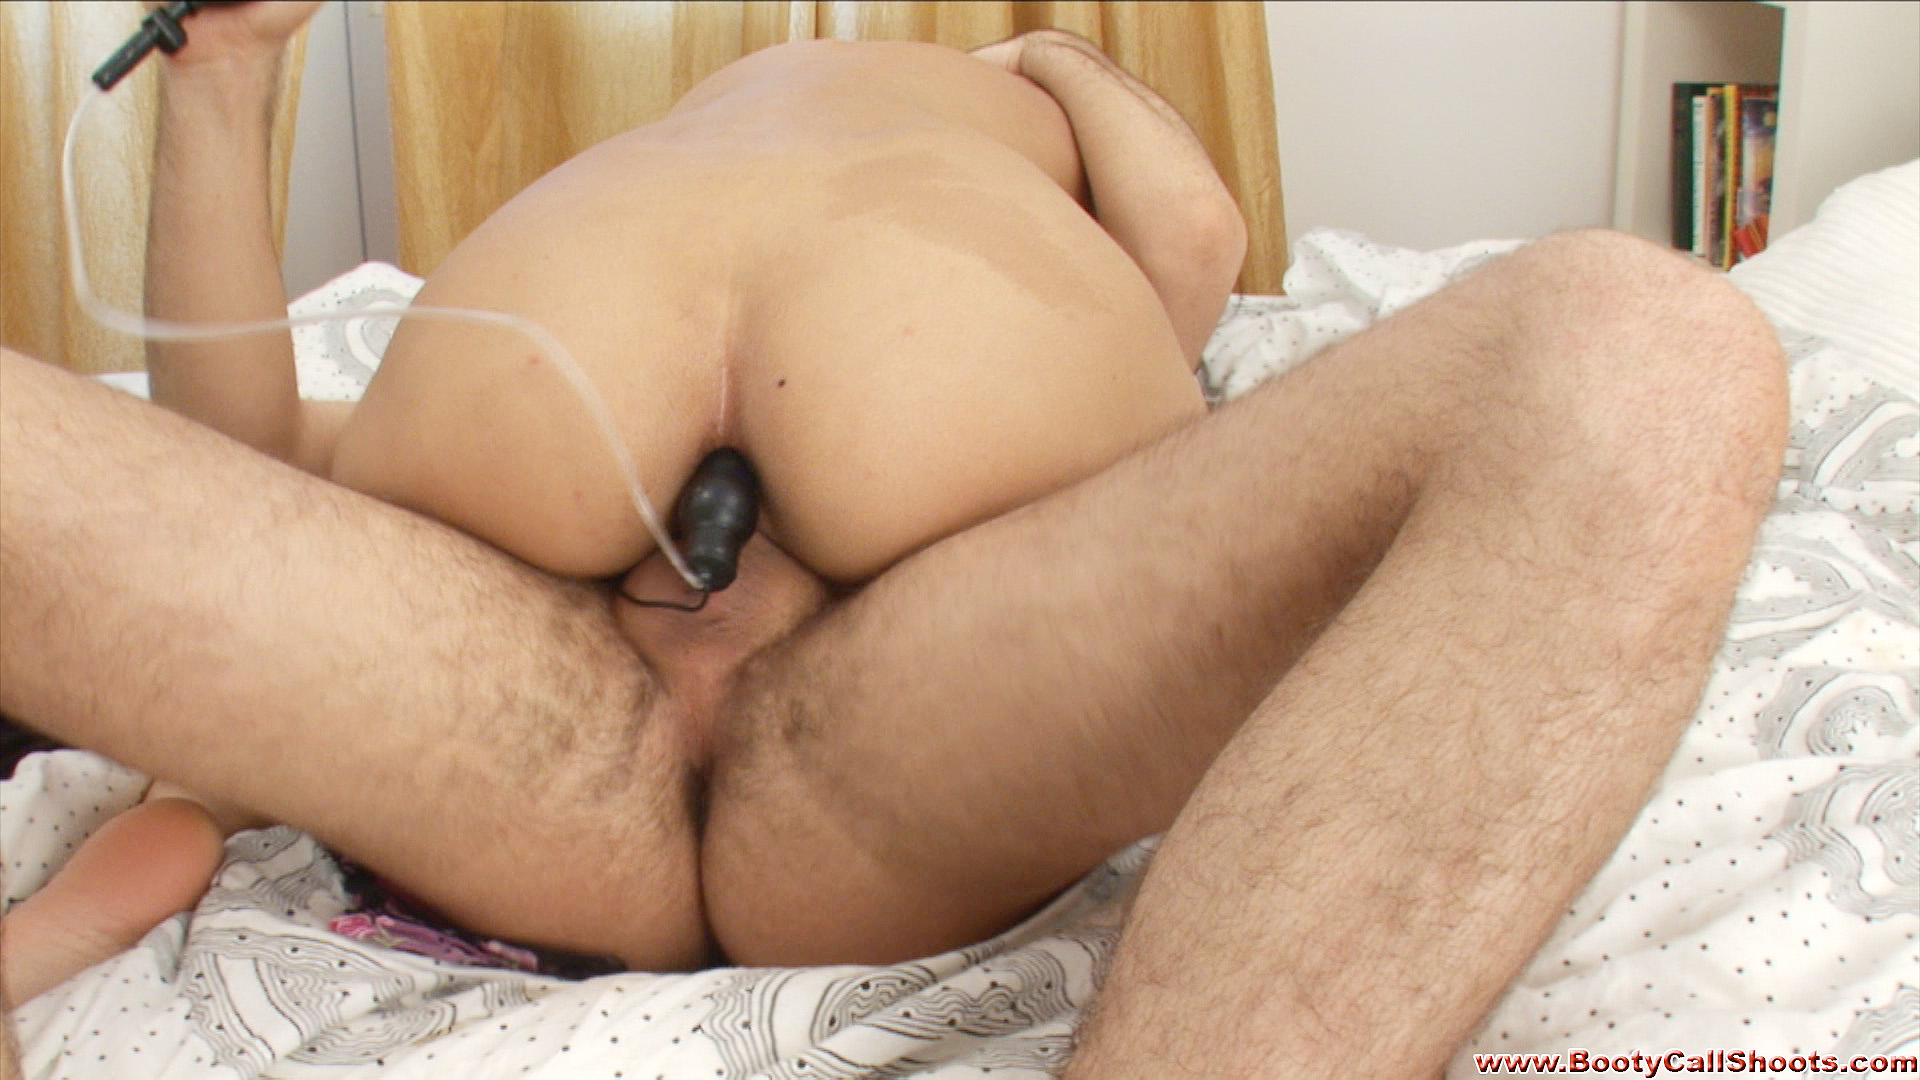 booty call for phone sex